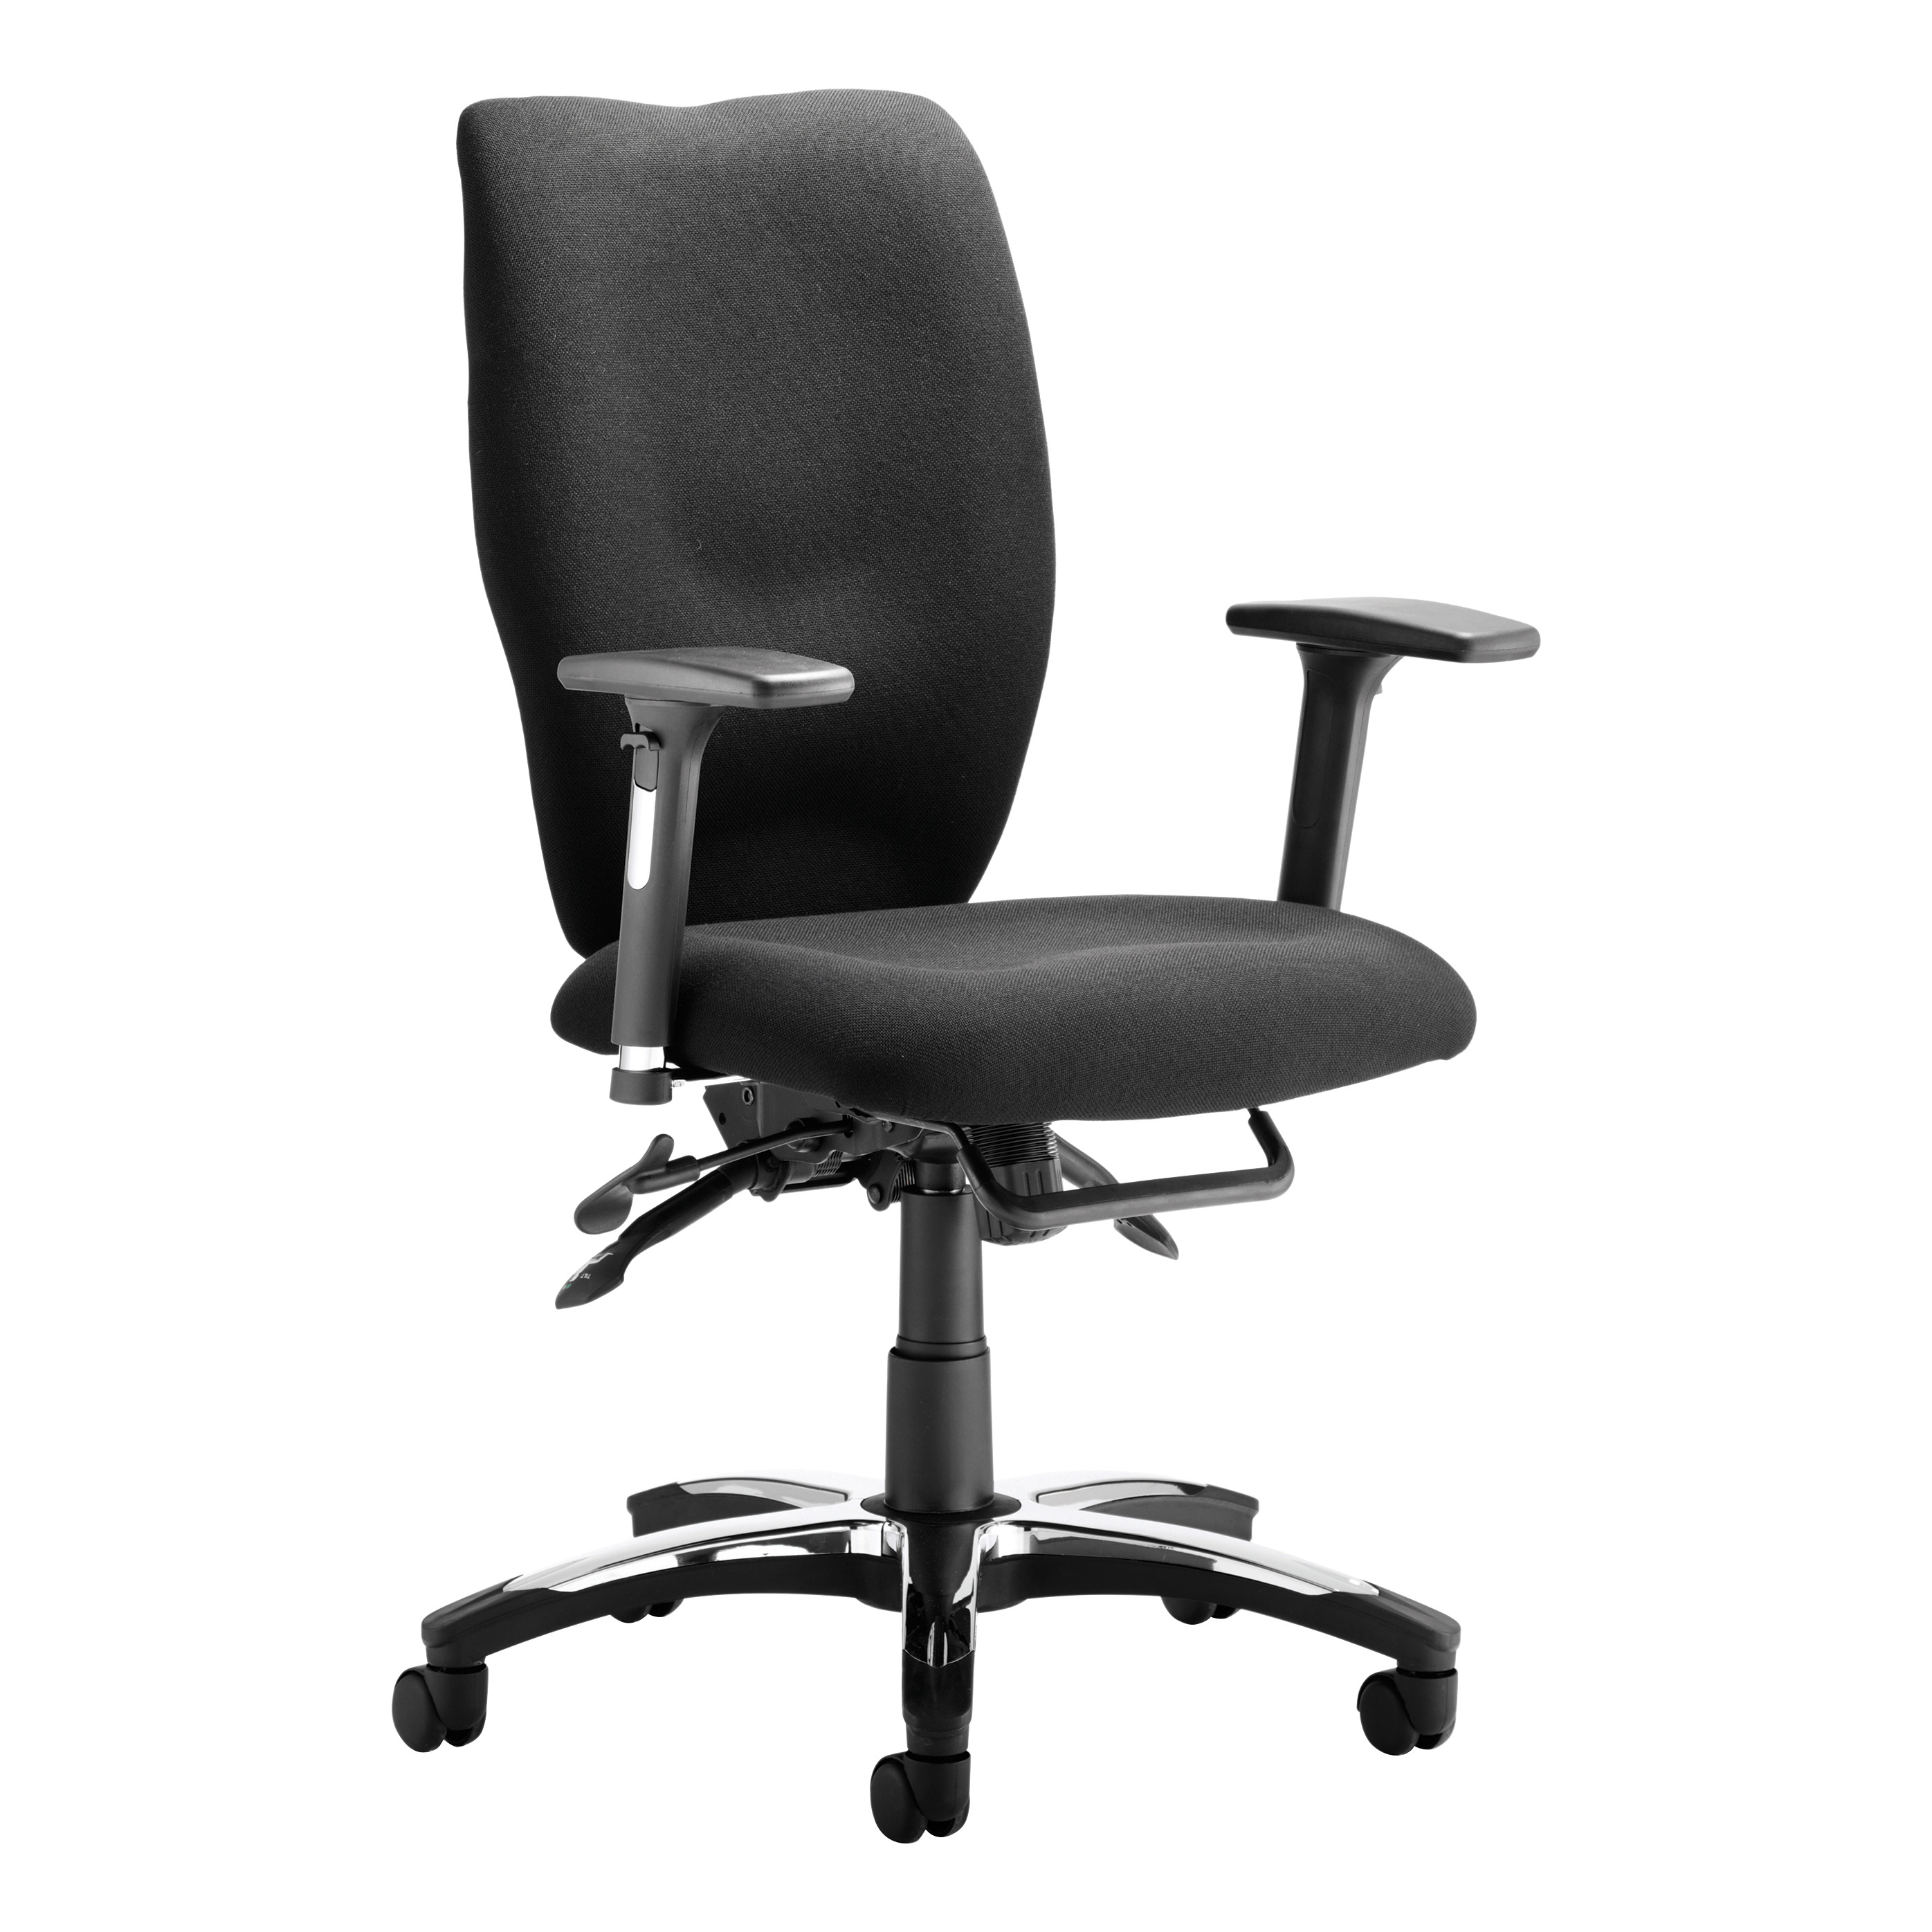 Sonix Sierra Chair Black 520x470-530x450-550mm Ref OP000176